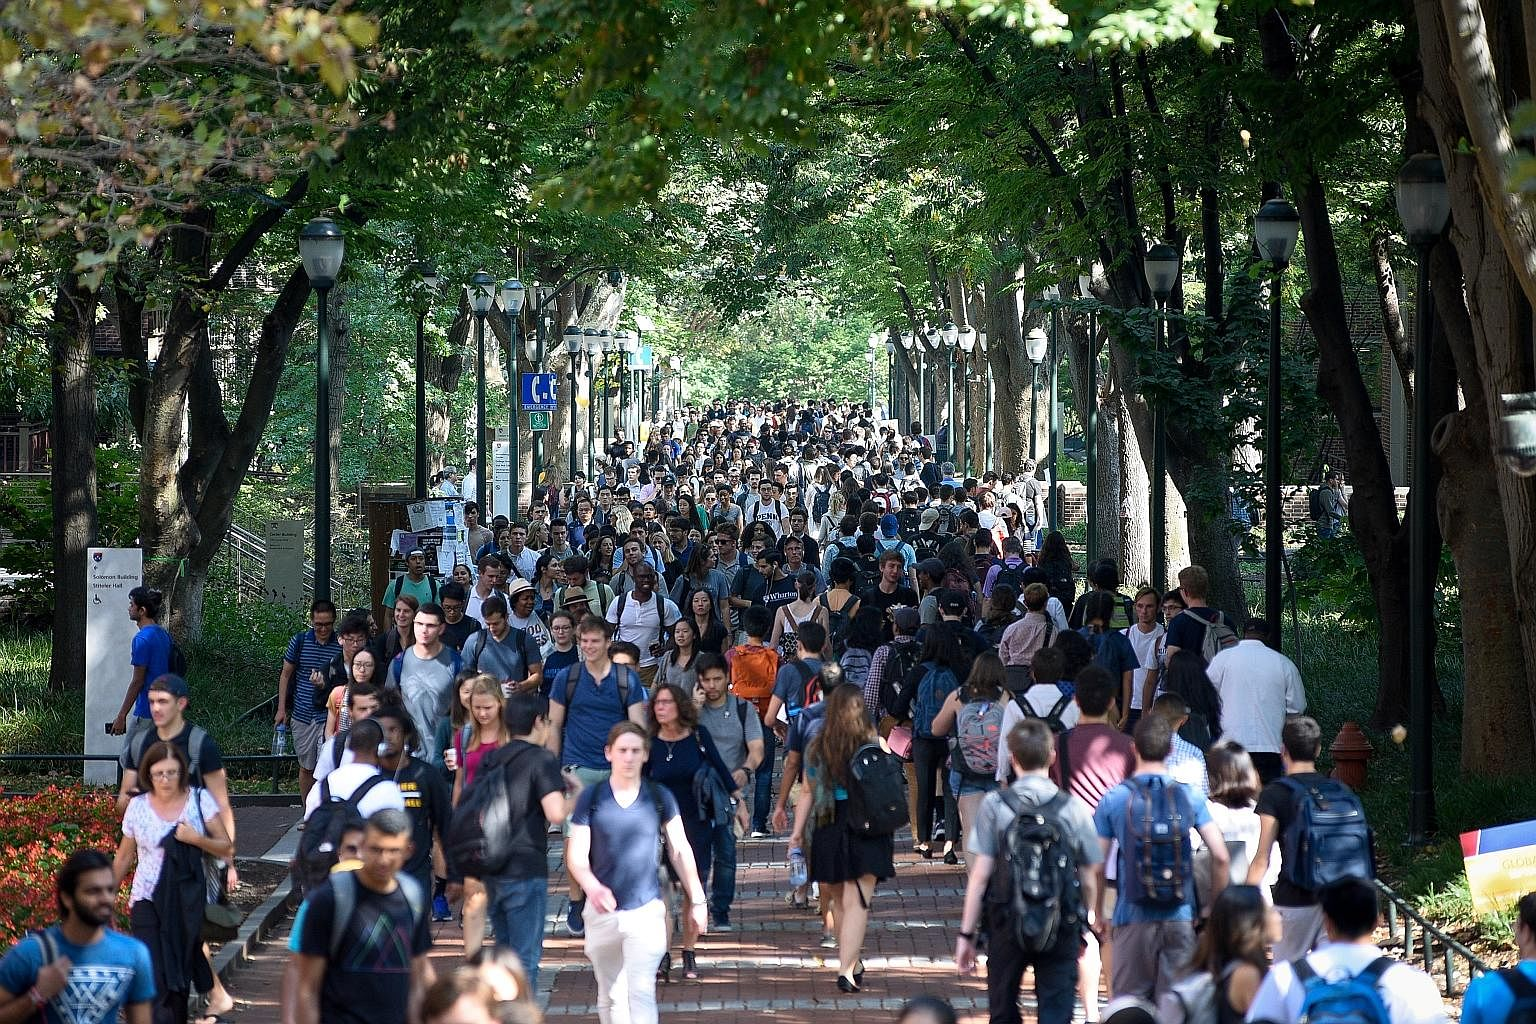 A new survey from the Brookings Institution shows a narrow majority of US students - 51 per cent - think it is